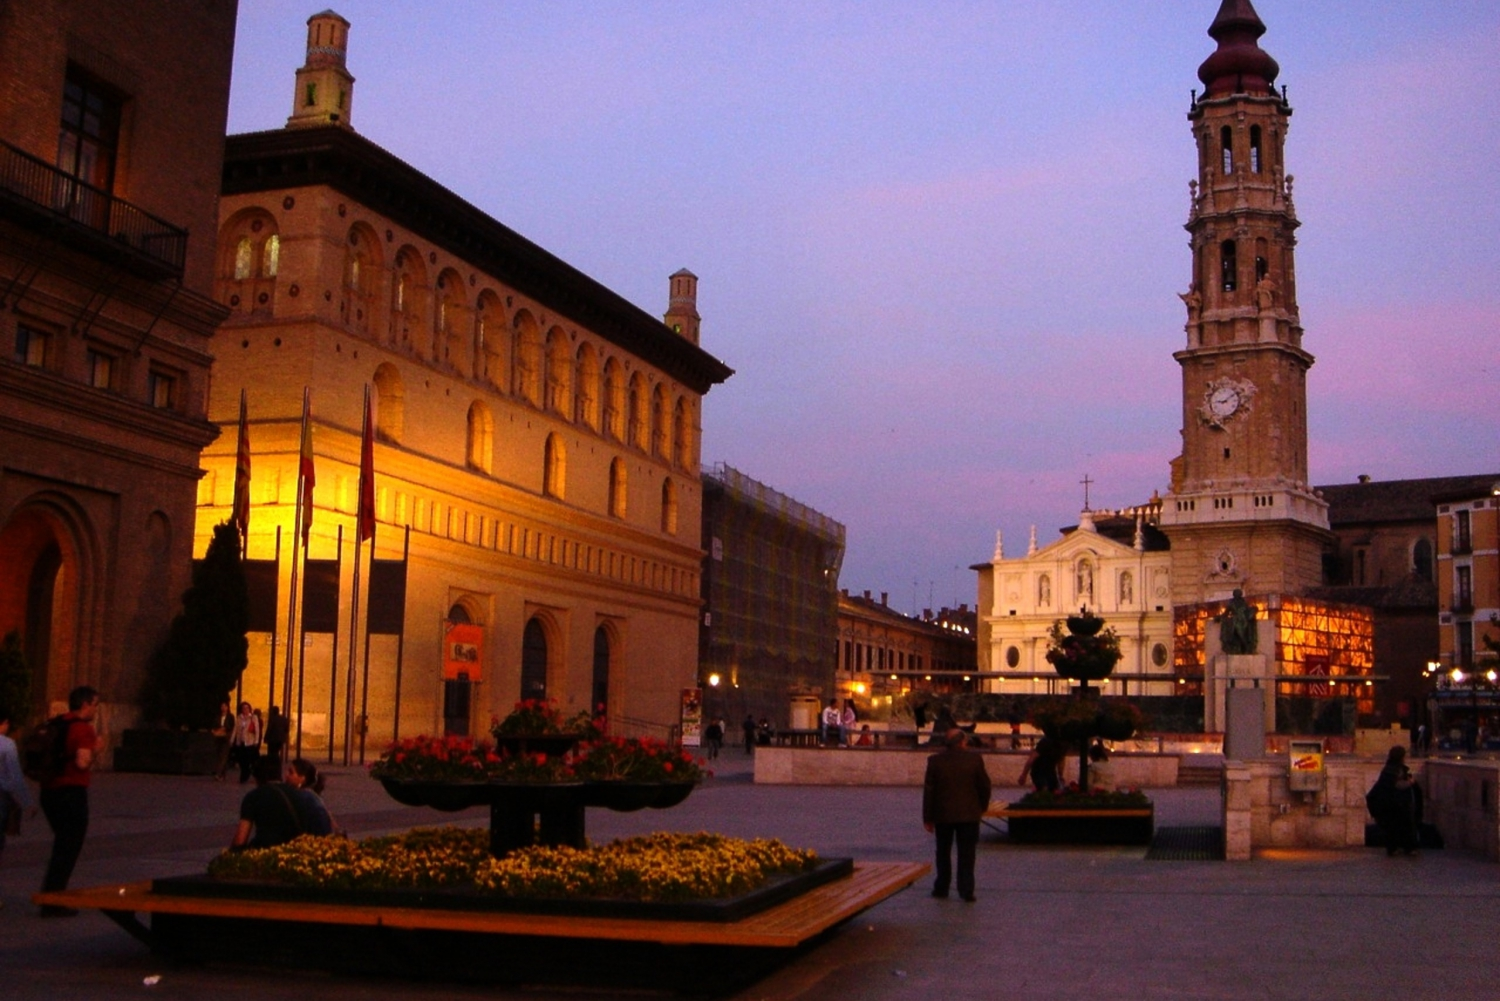 8-Day Tour of Northern Spain's Coast & Cities